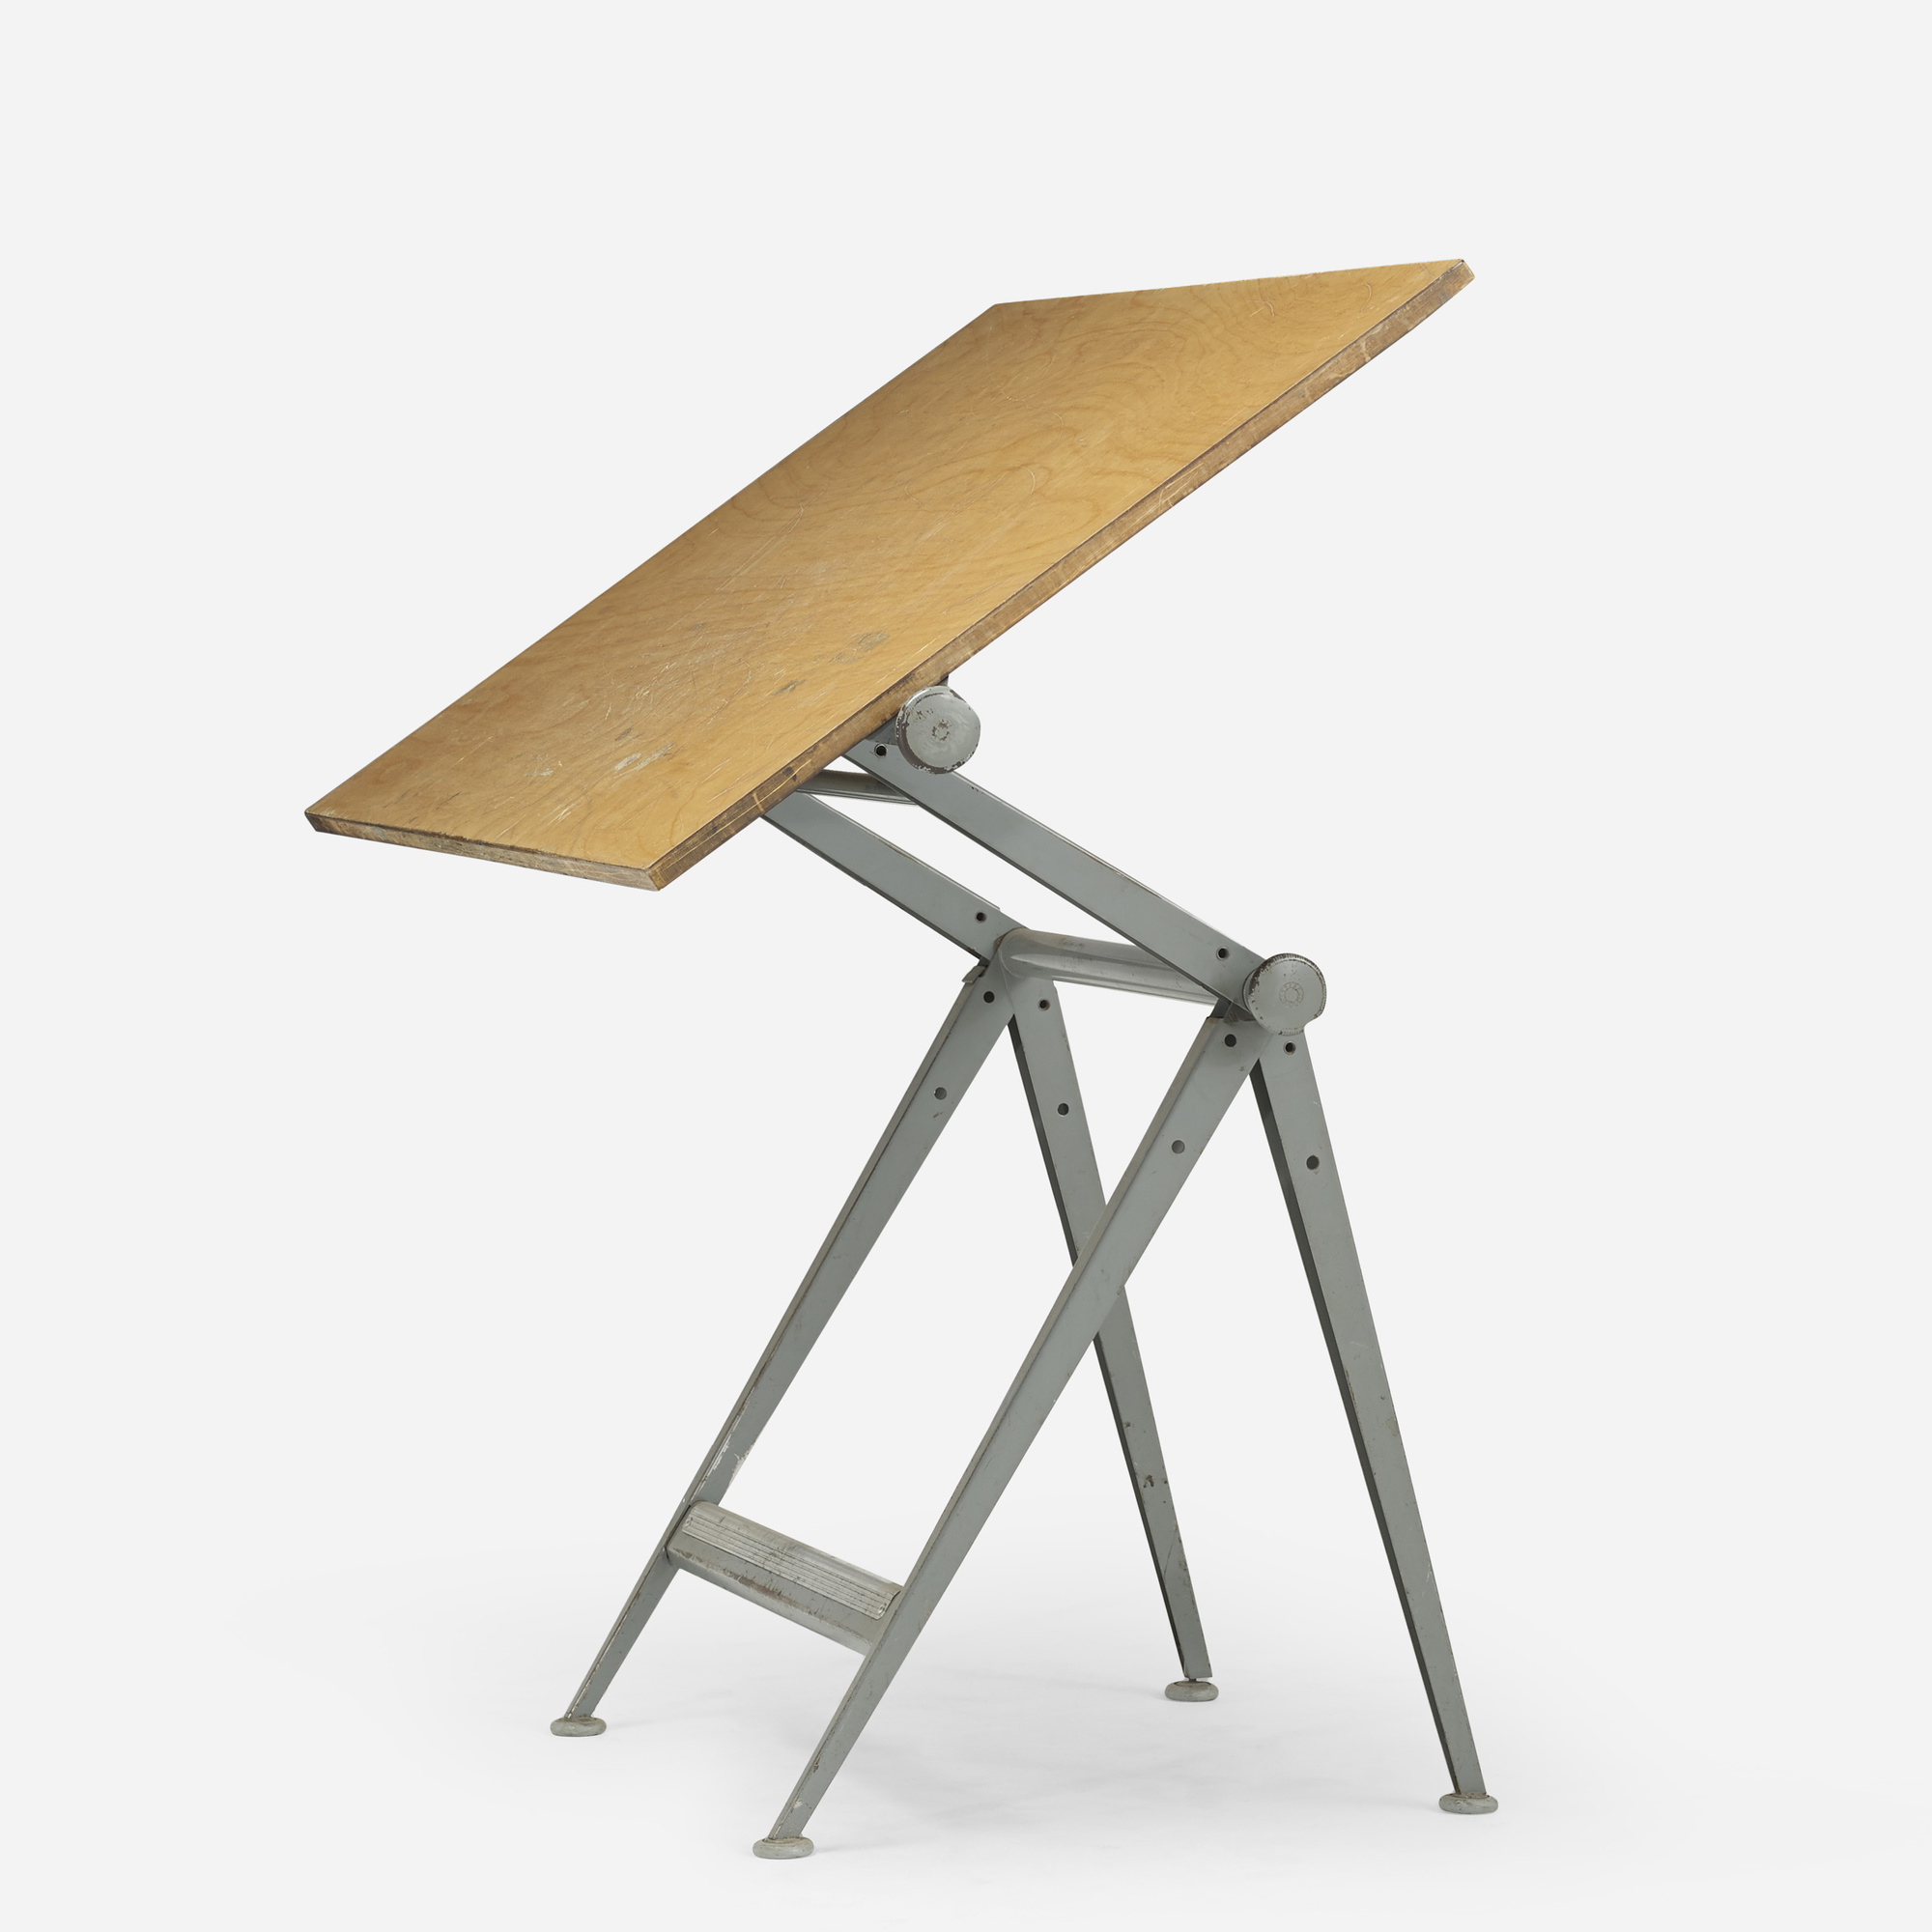 454: Wim Rietveld and Friso Kramer / drafting table (1 of 3)